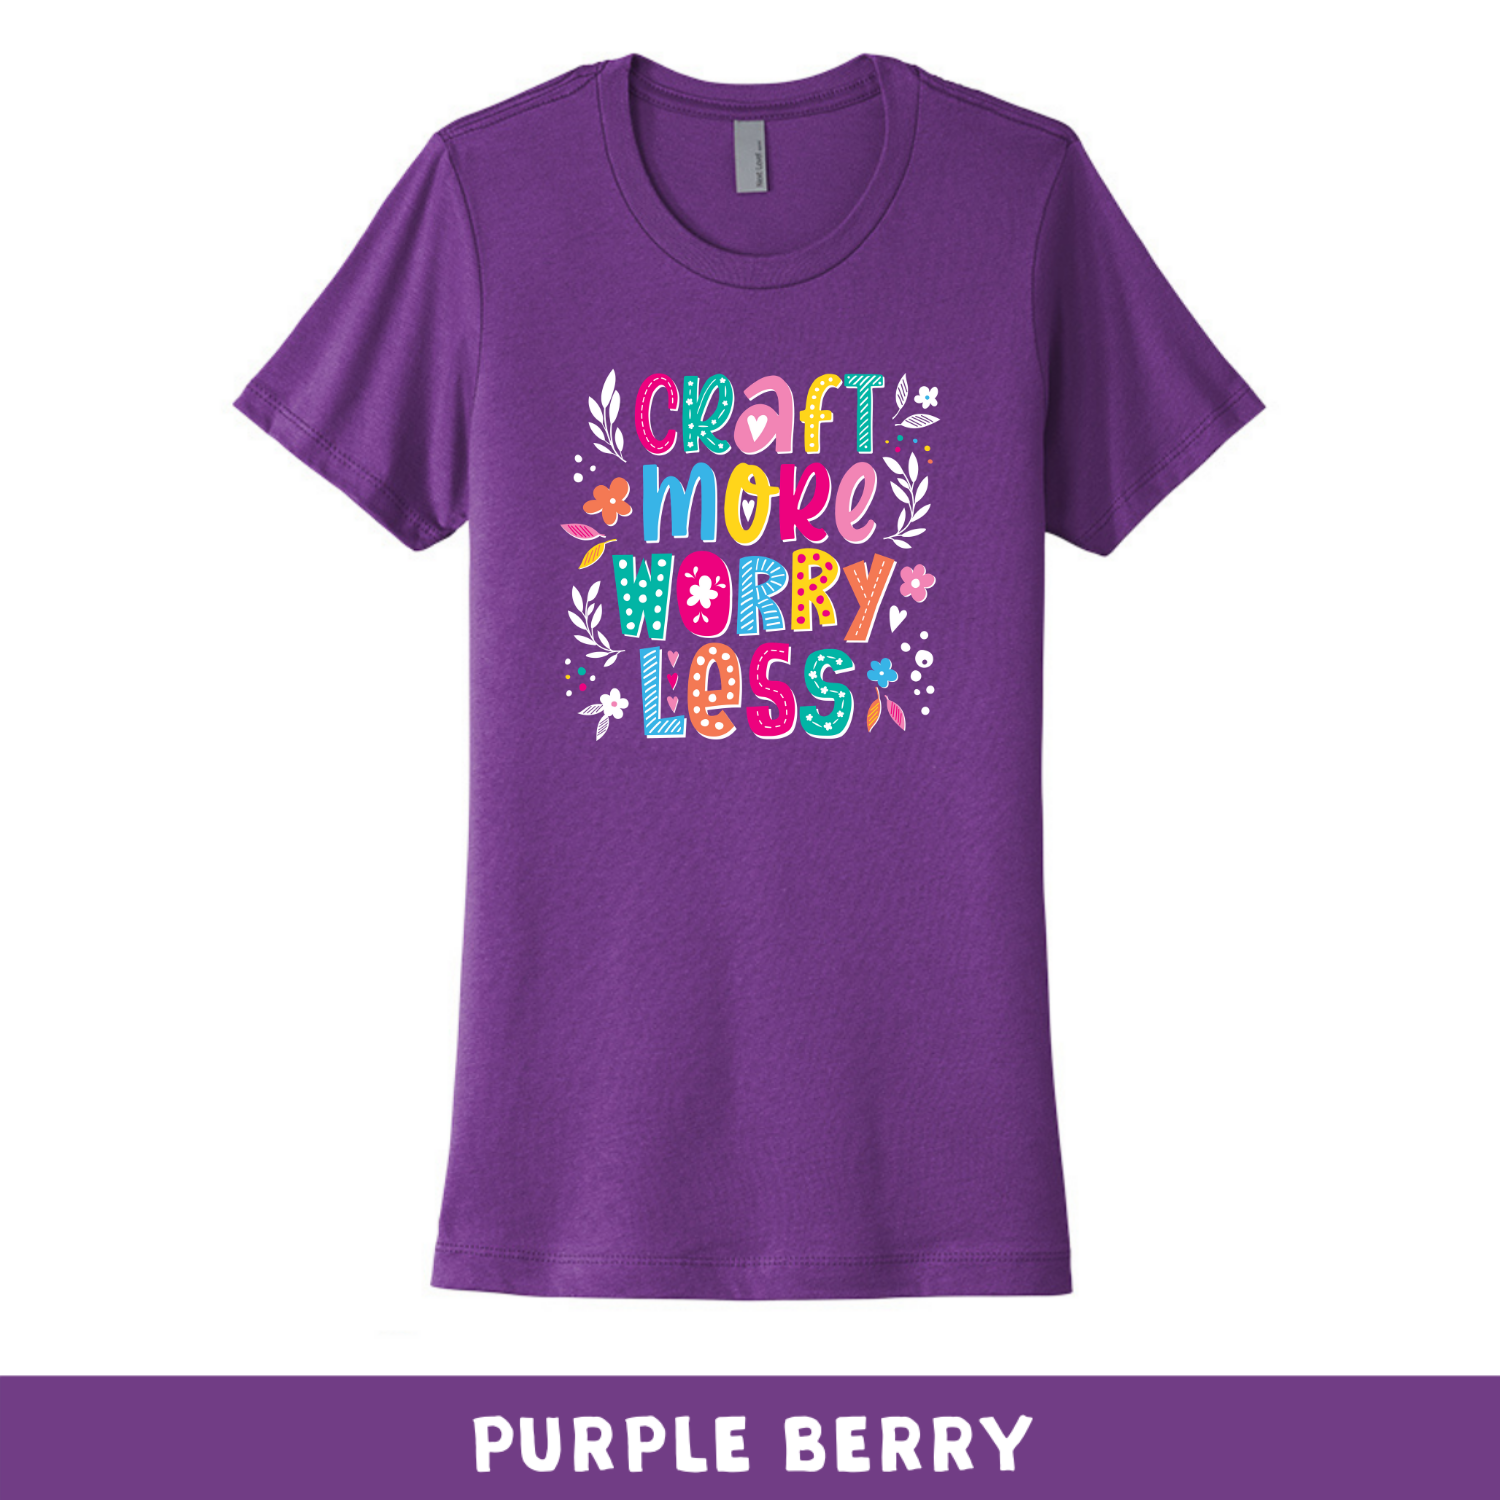 Purple Raspberry - Crew Neck Boyfriend Tee - Craft More Worry Less